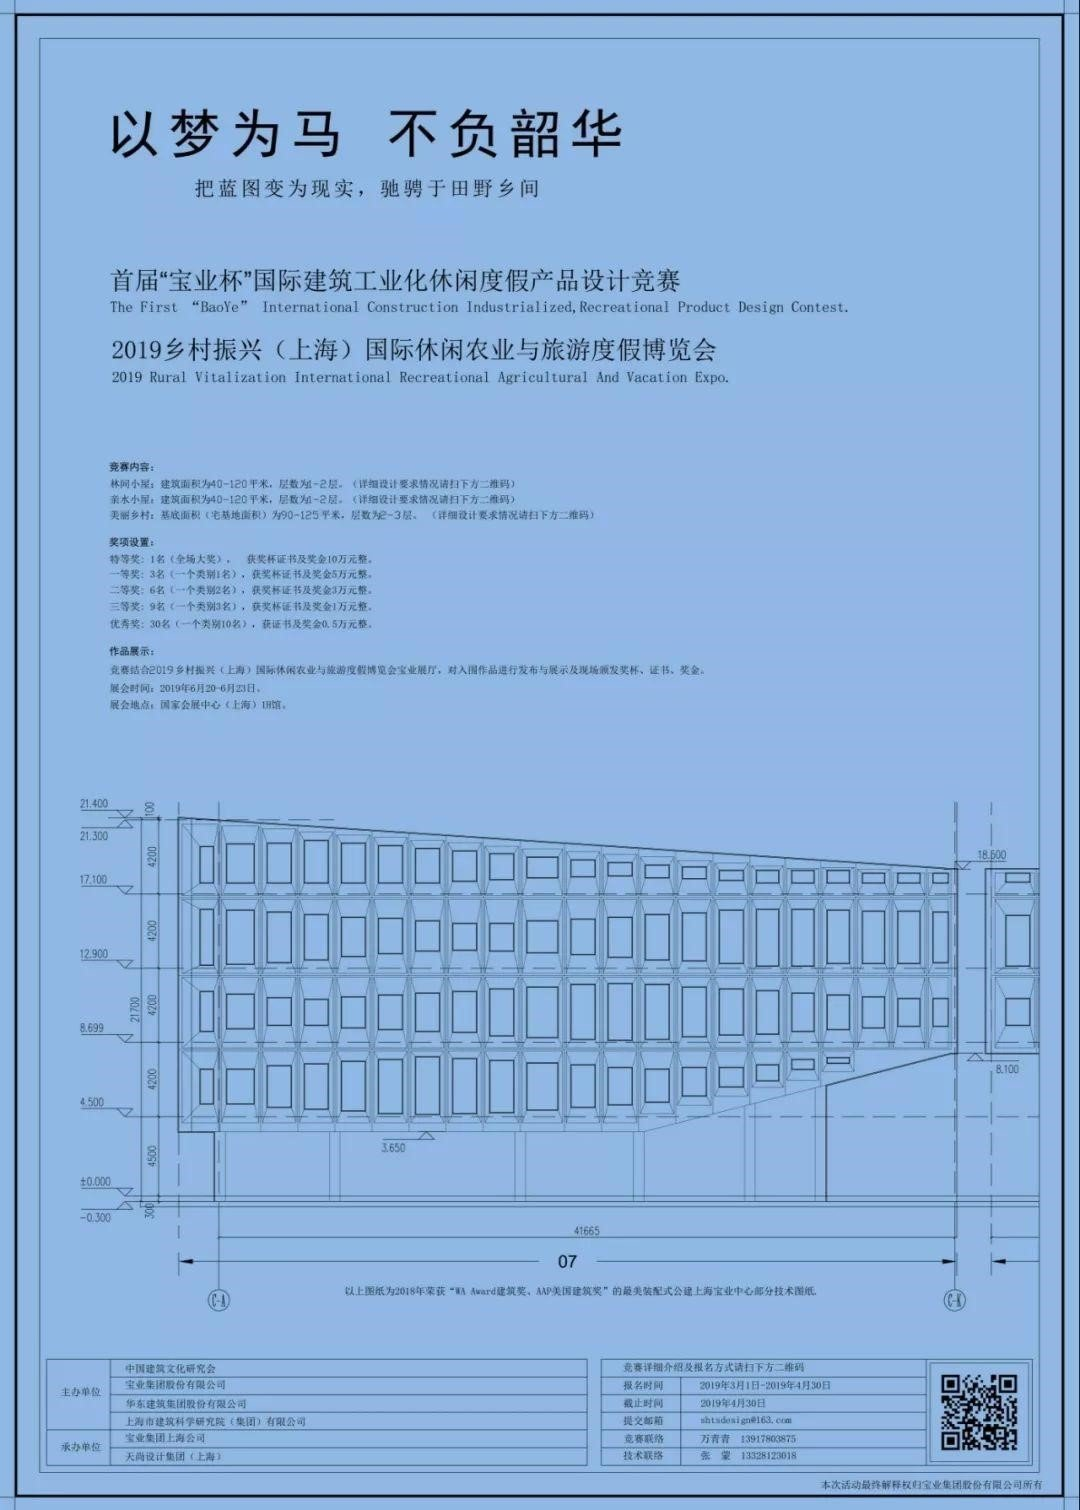 """Architectural Design Competition: The First """"Baoye Cup"""" International Architecture Industrial Leisure and Vacation Product Design Competition"""